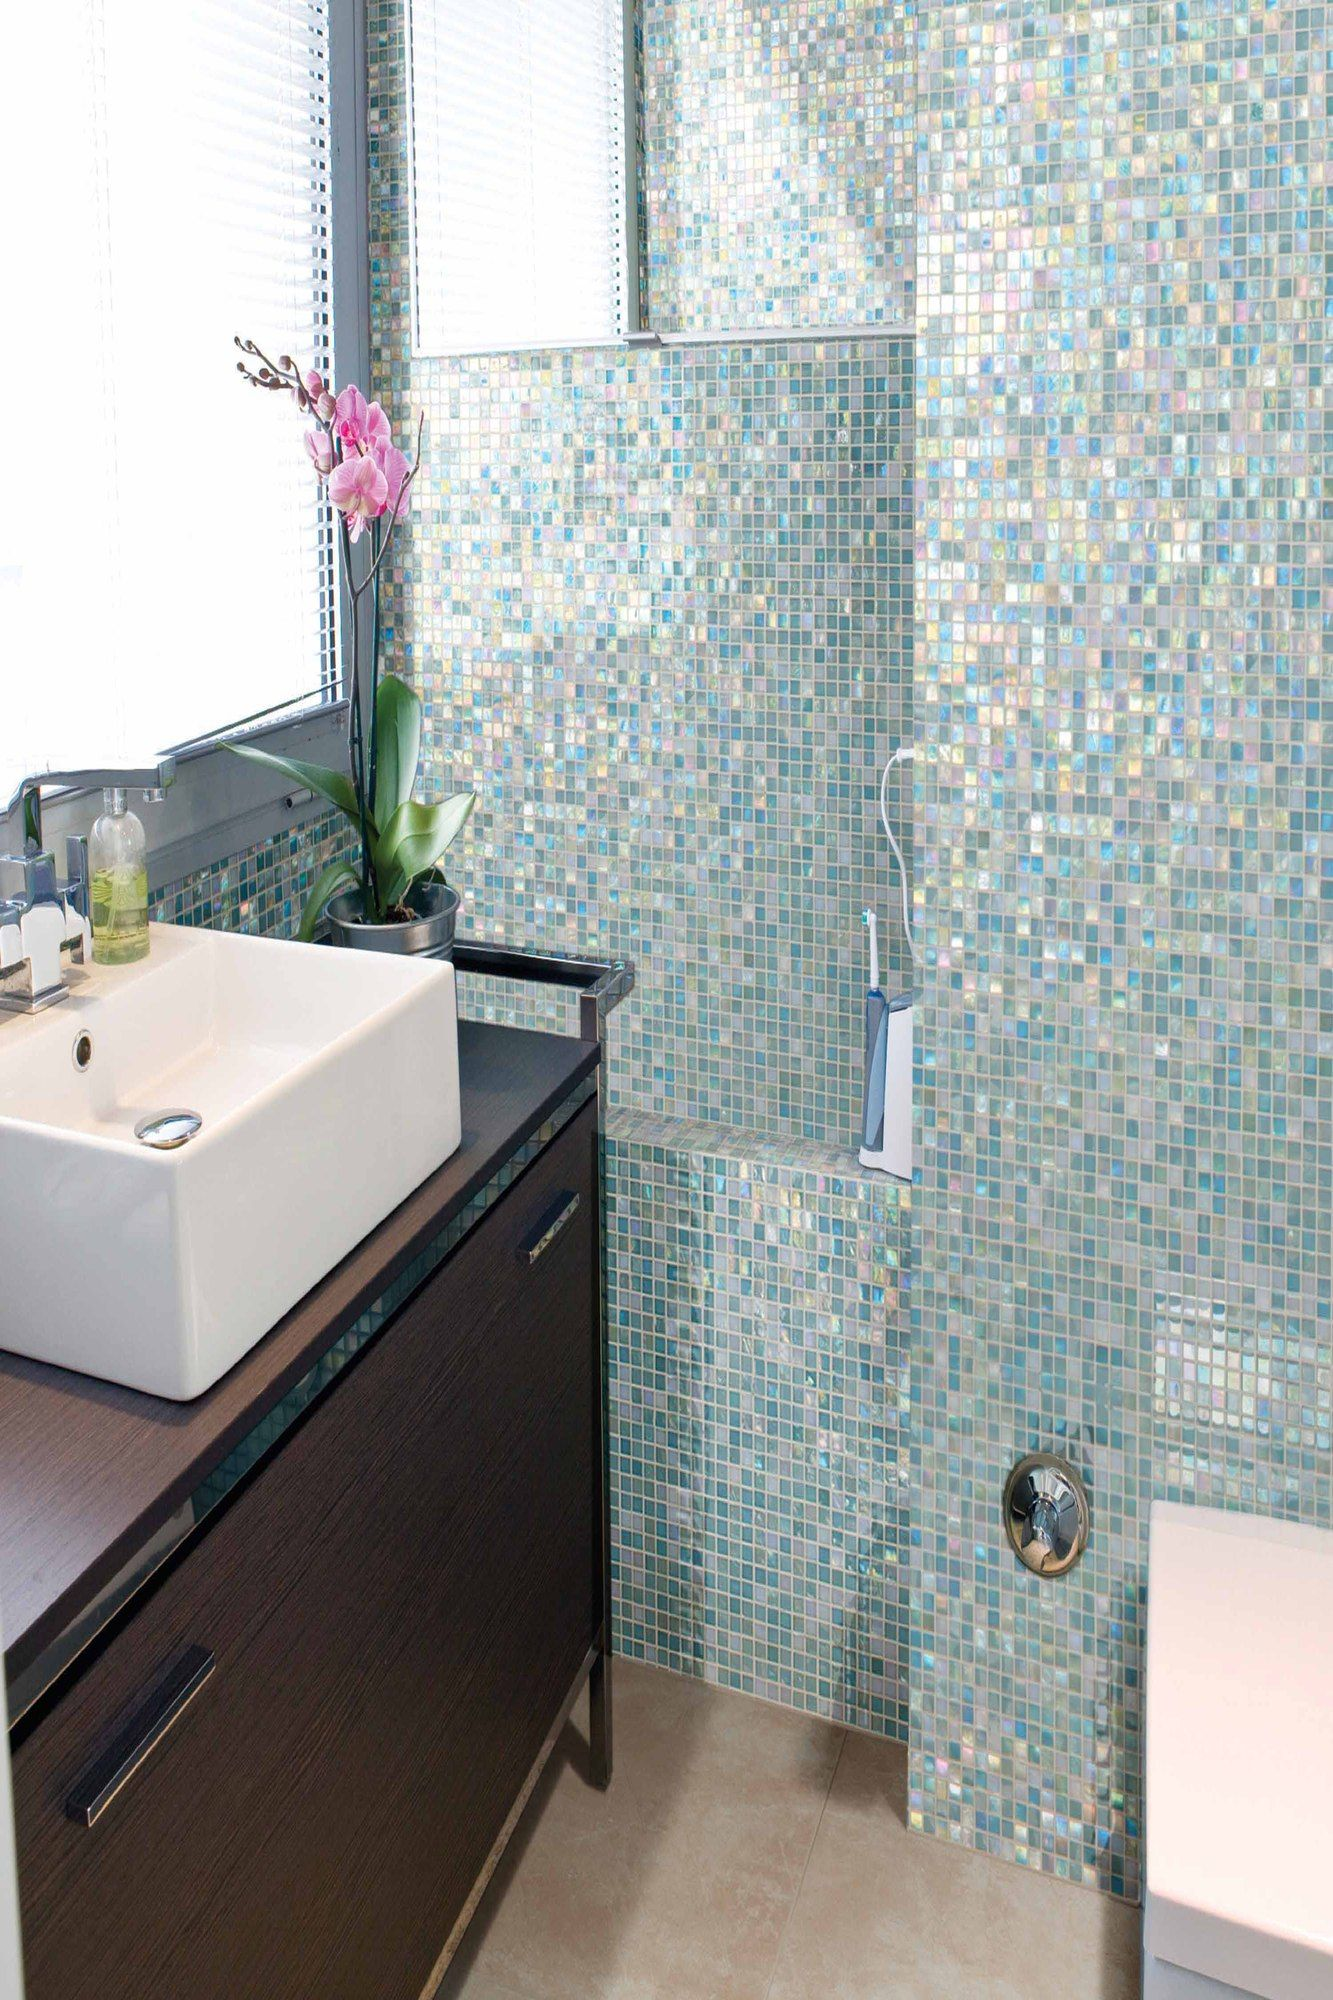 daltile city lights south beach mosaic tile | home decor [dreams ...